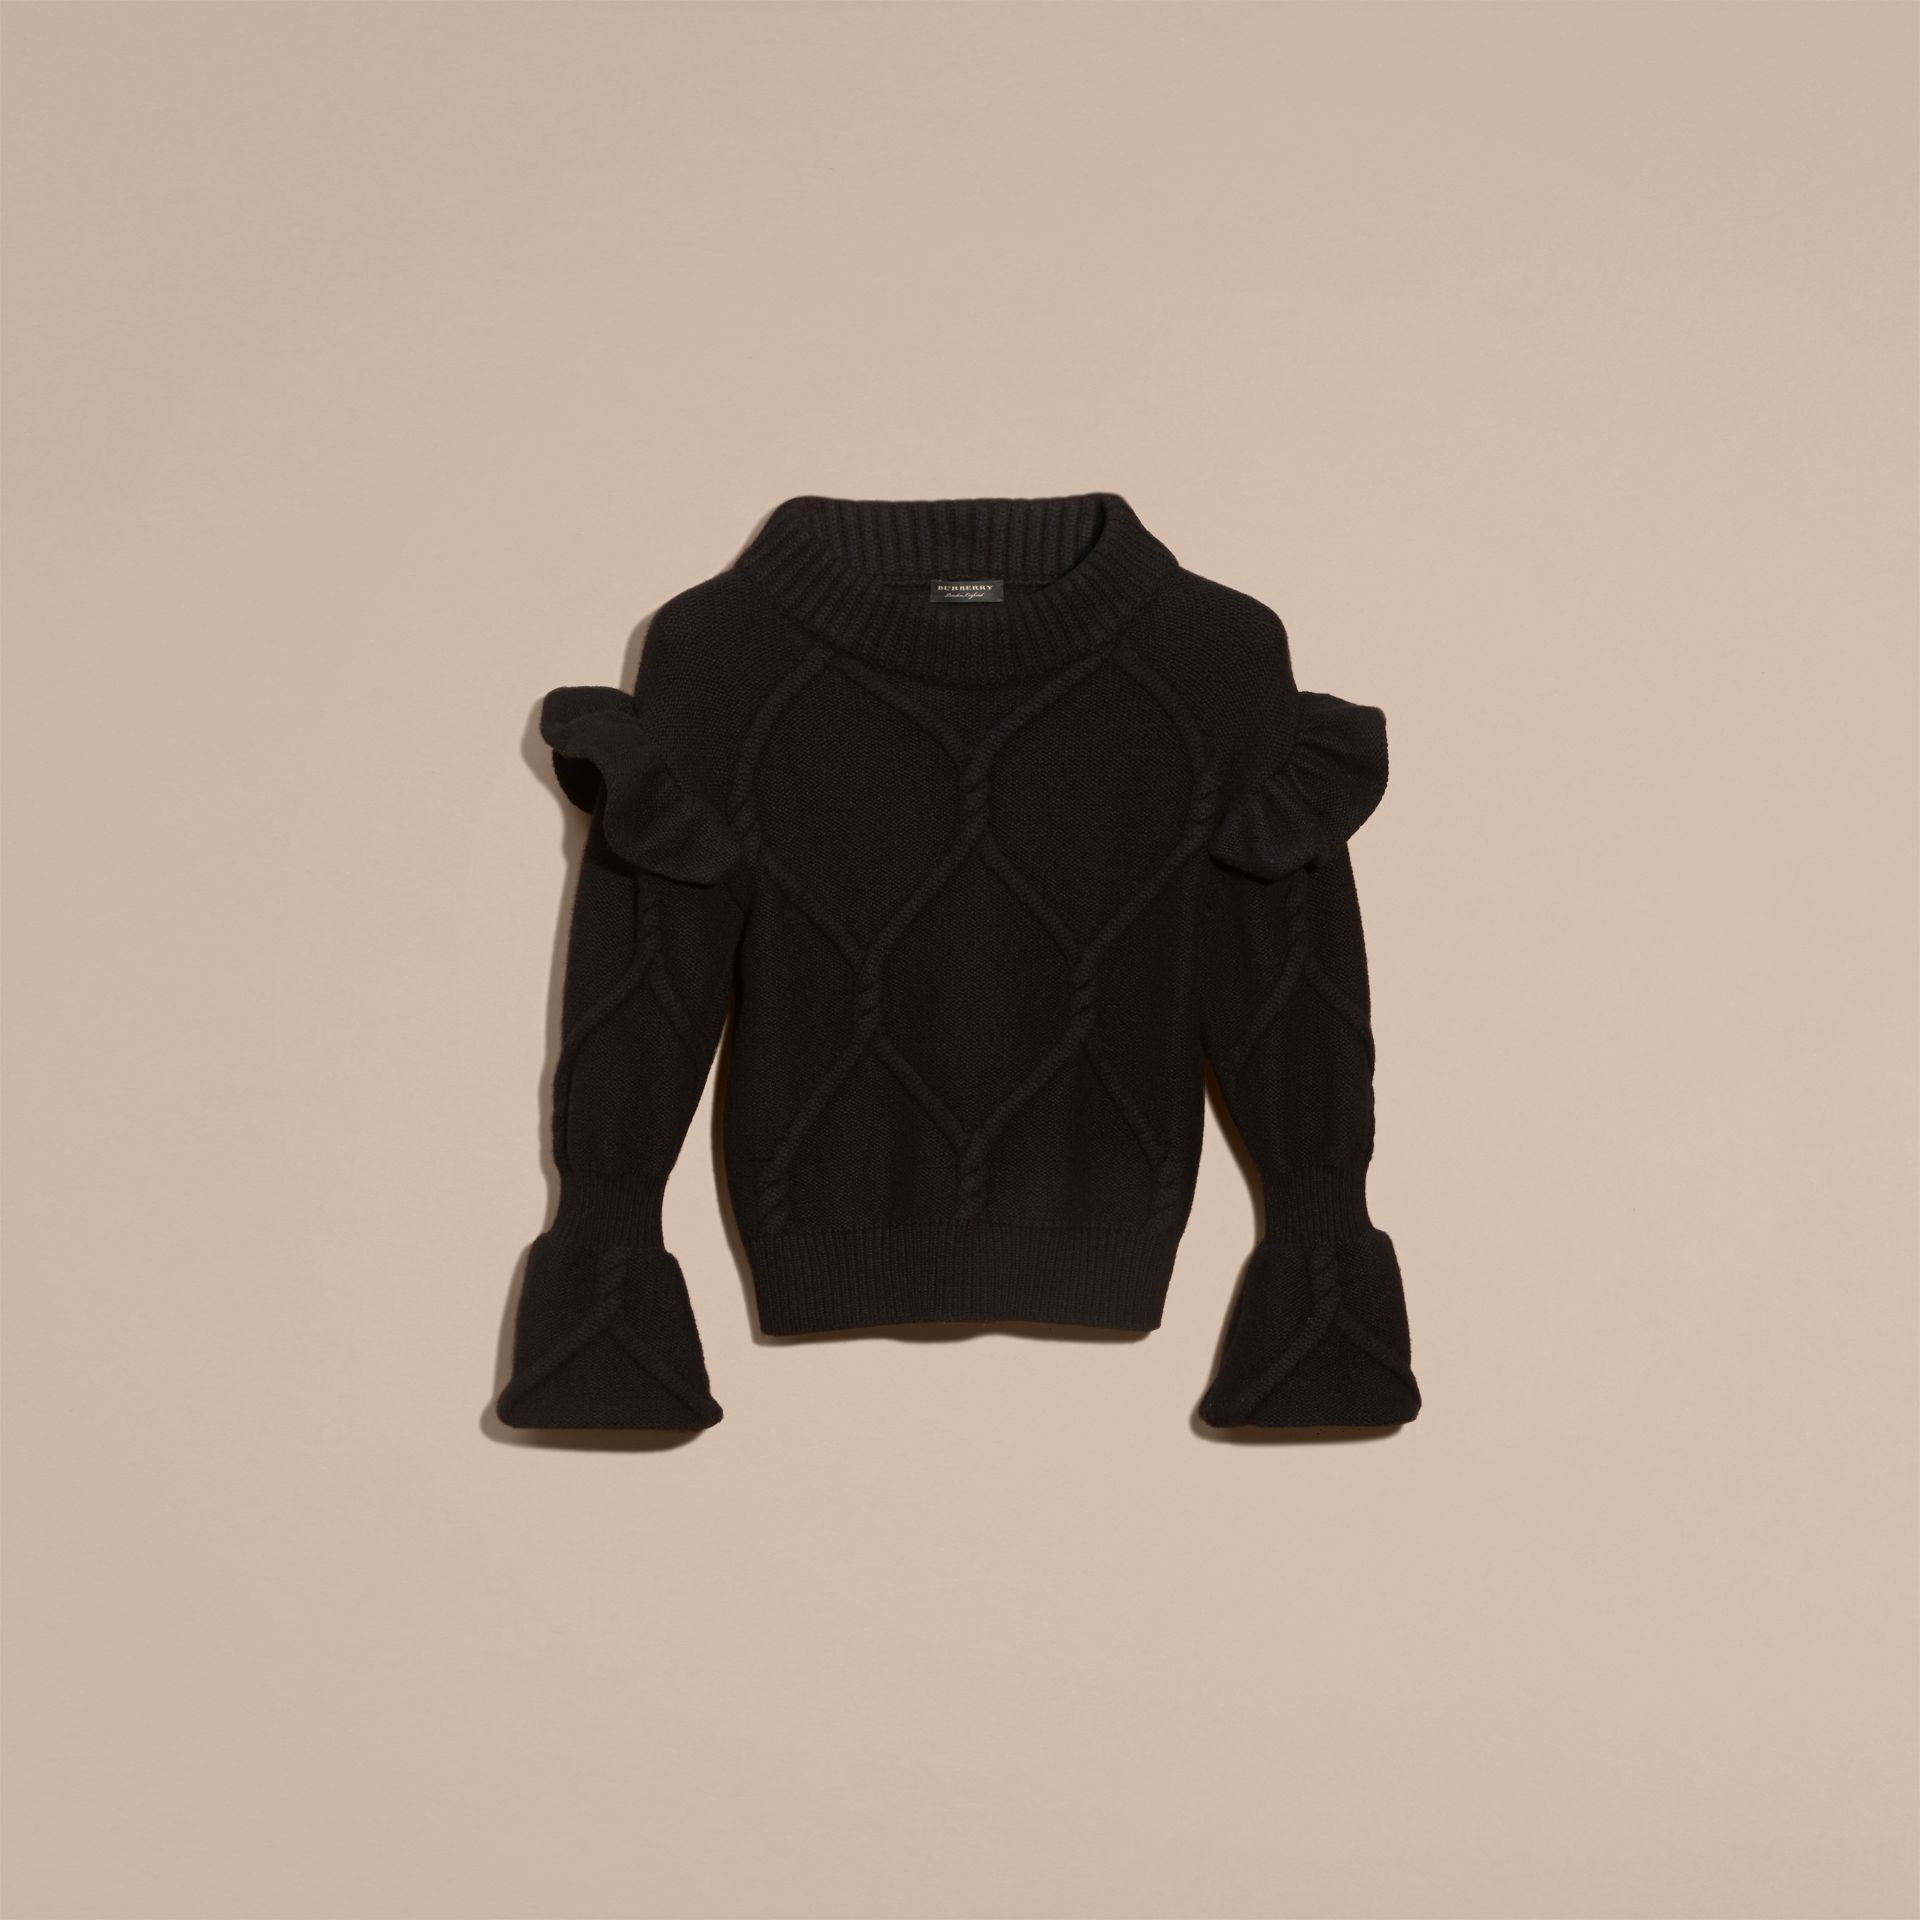 Black Cable Knit Wool Cashmere Sweater with Ruffle Bell Sleeves Black - gallery image 4